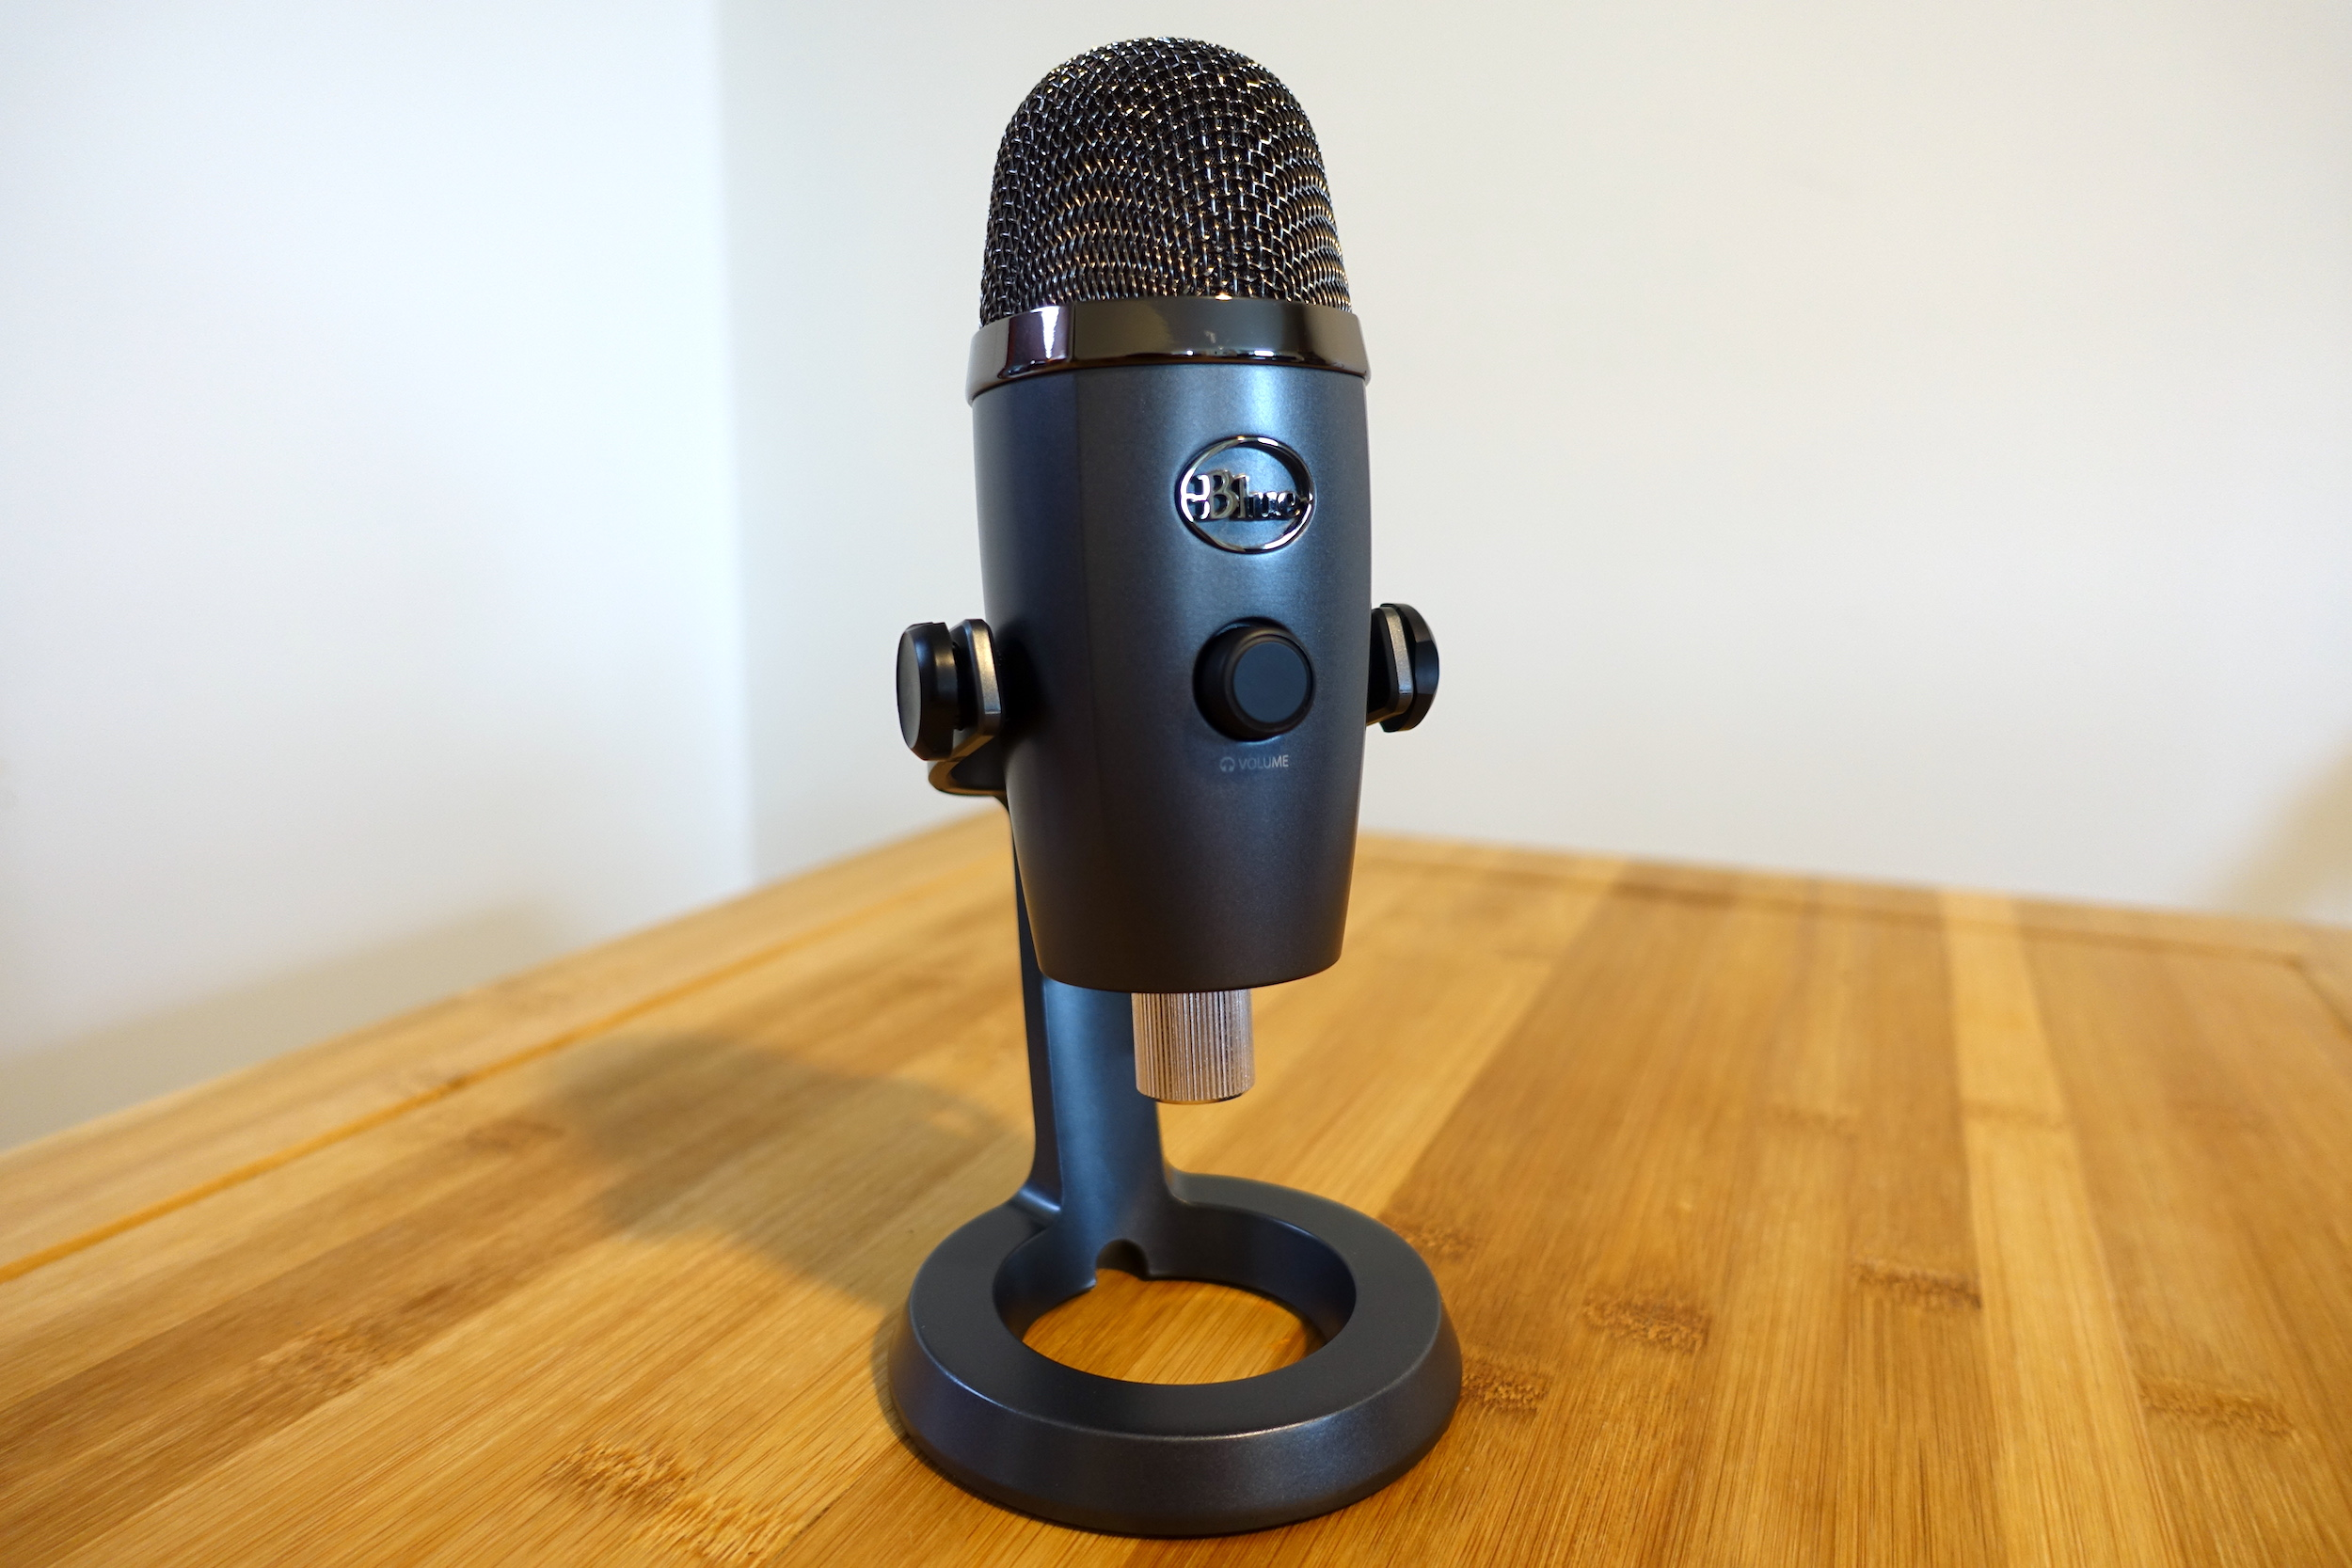 Blue's Yeti Nano is a classy upgrade over your laptop's built-in mic.